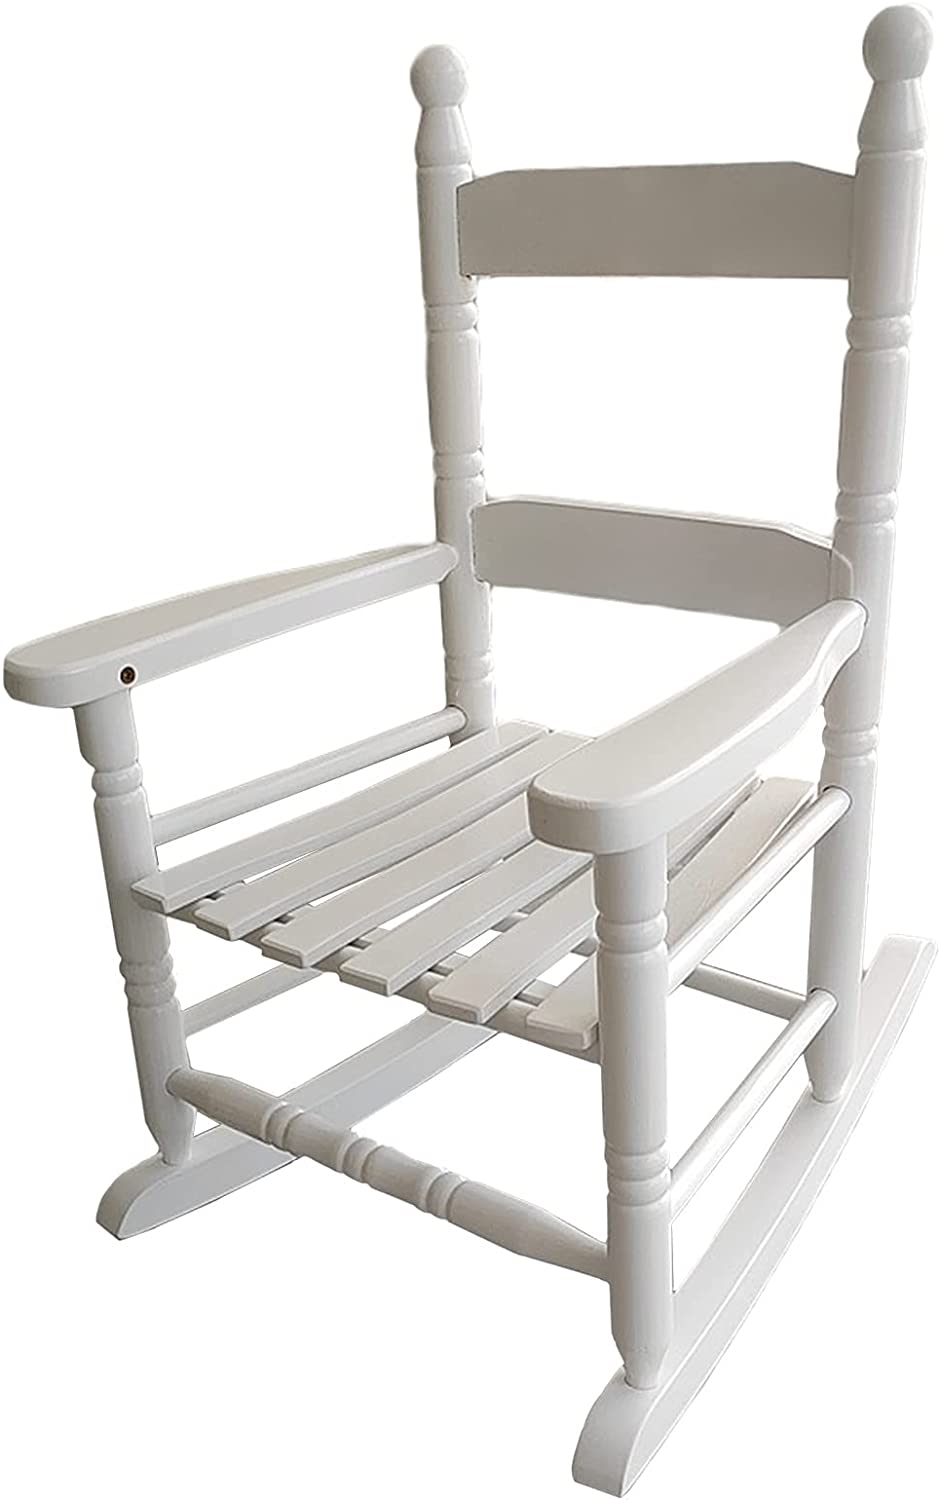 LXLA White Classic Wooden Kids Cha Discount is also underway with Rocker Handrail Rocking Quantity limited